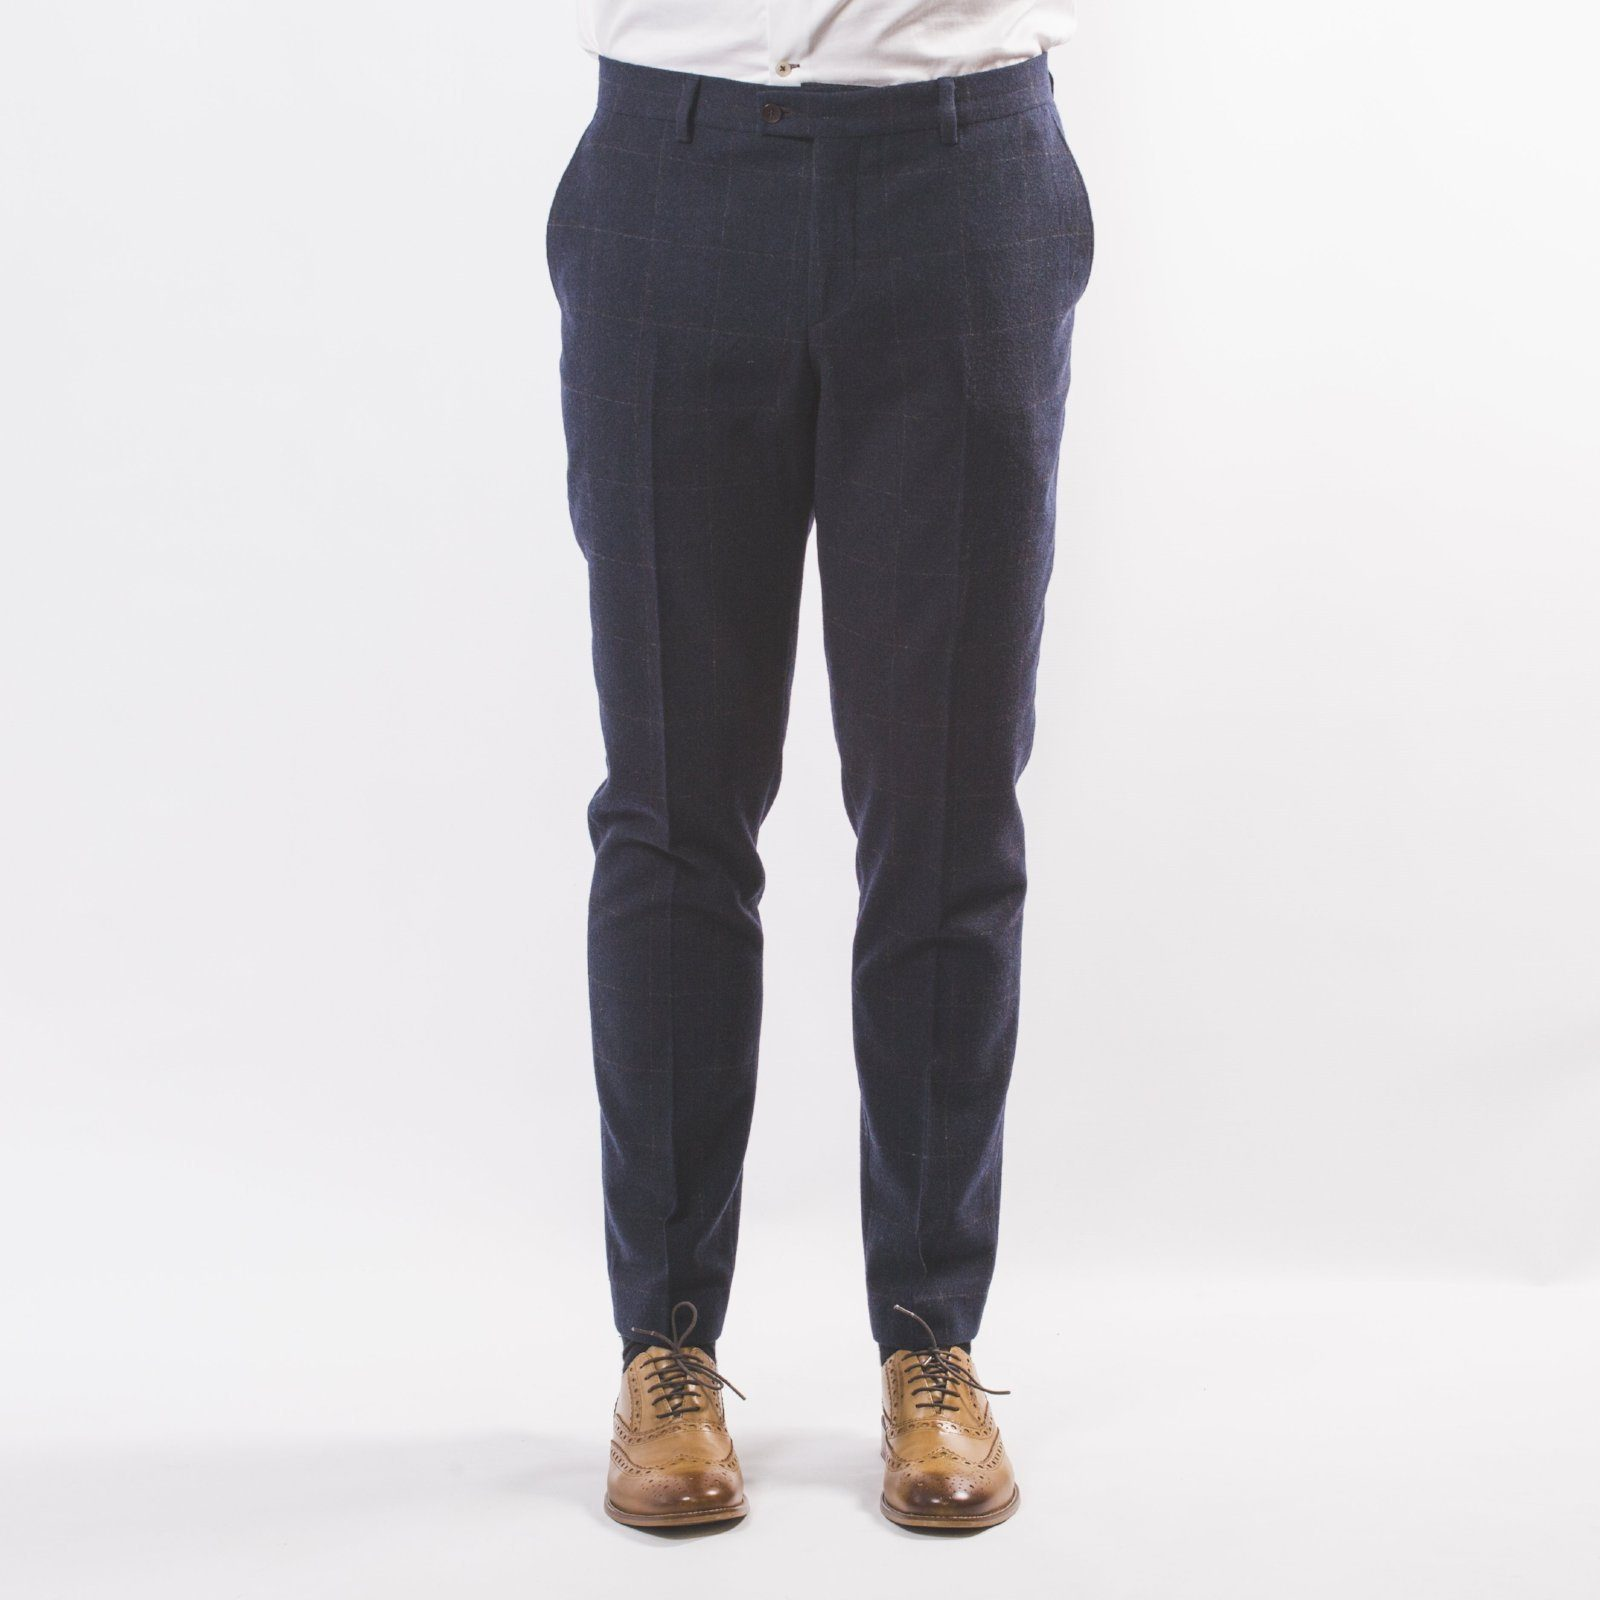 Navy Wool Mix Windowpane Trouser - Leonard Silver